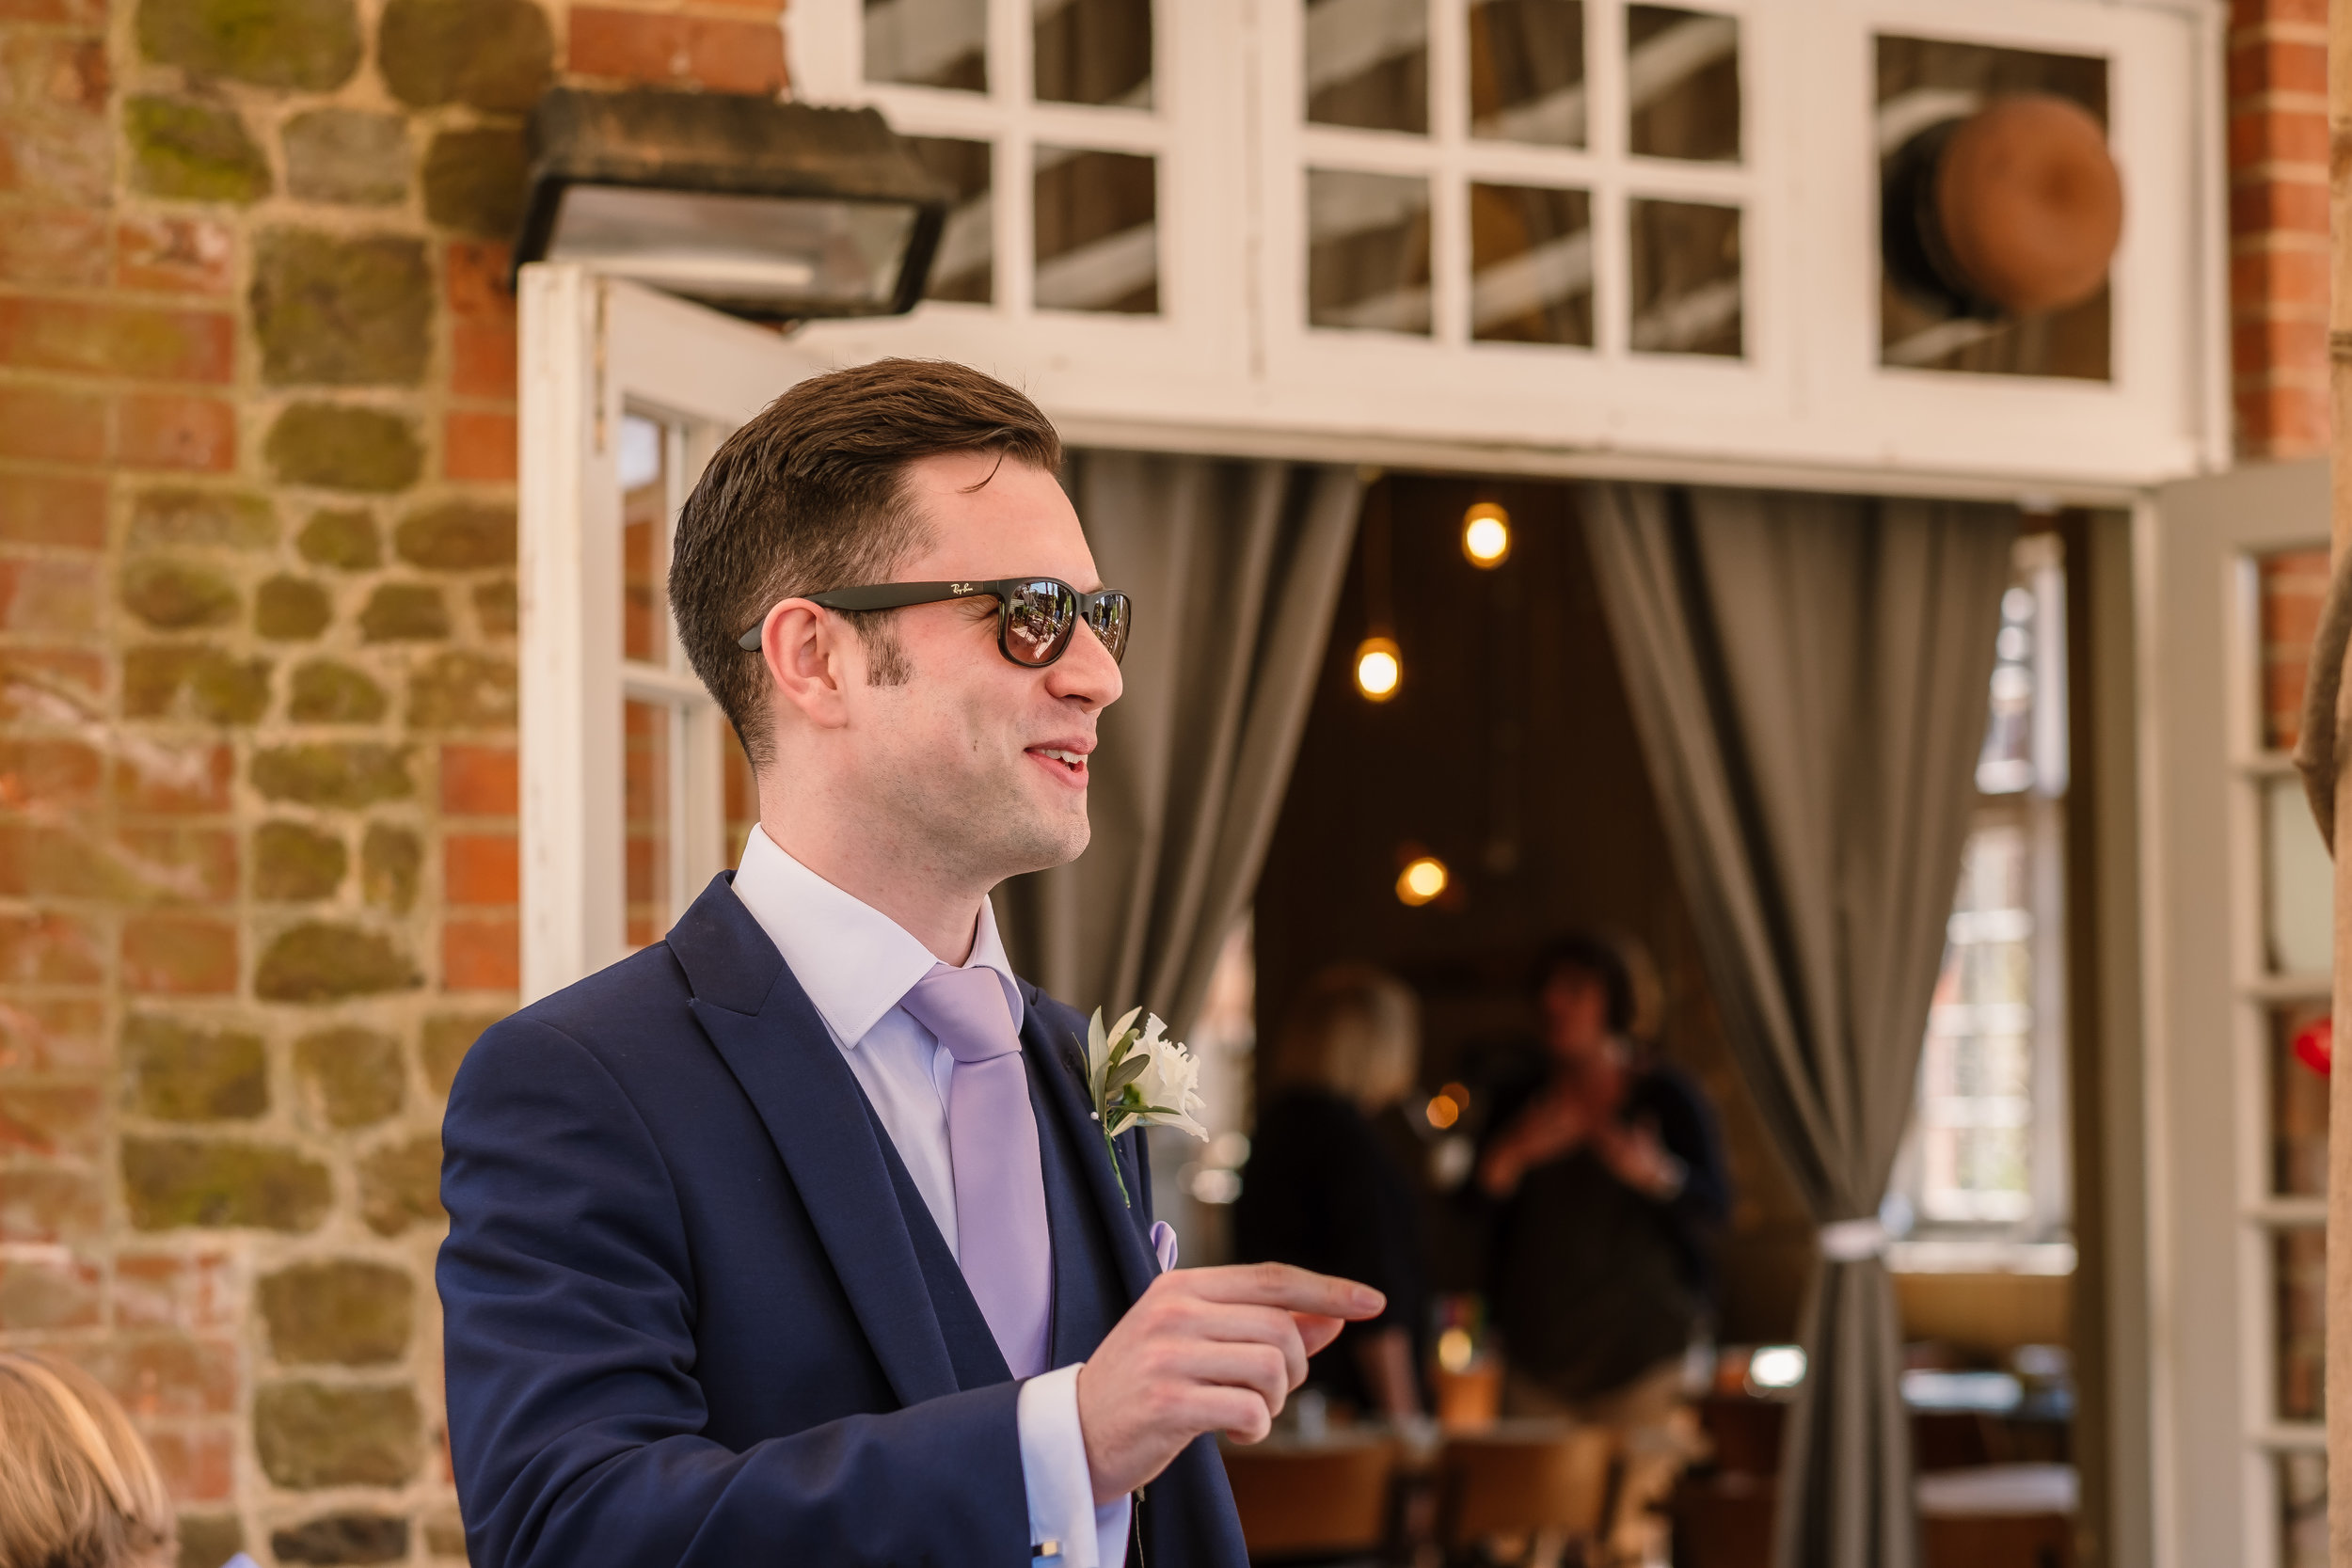 Sarah-Fishlock-Photography / Hampshire-wedding-photographer-hampshire / fleet-wedding-photographer-fleet / Millbridge-Court-Wedding-Photographer / Millbridge-Court-Wedding-Venue / Surrey-wedding-venue-